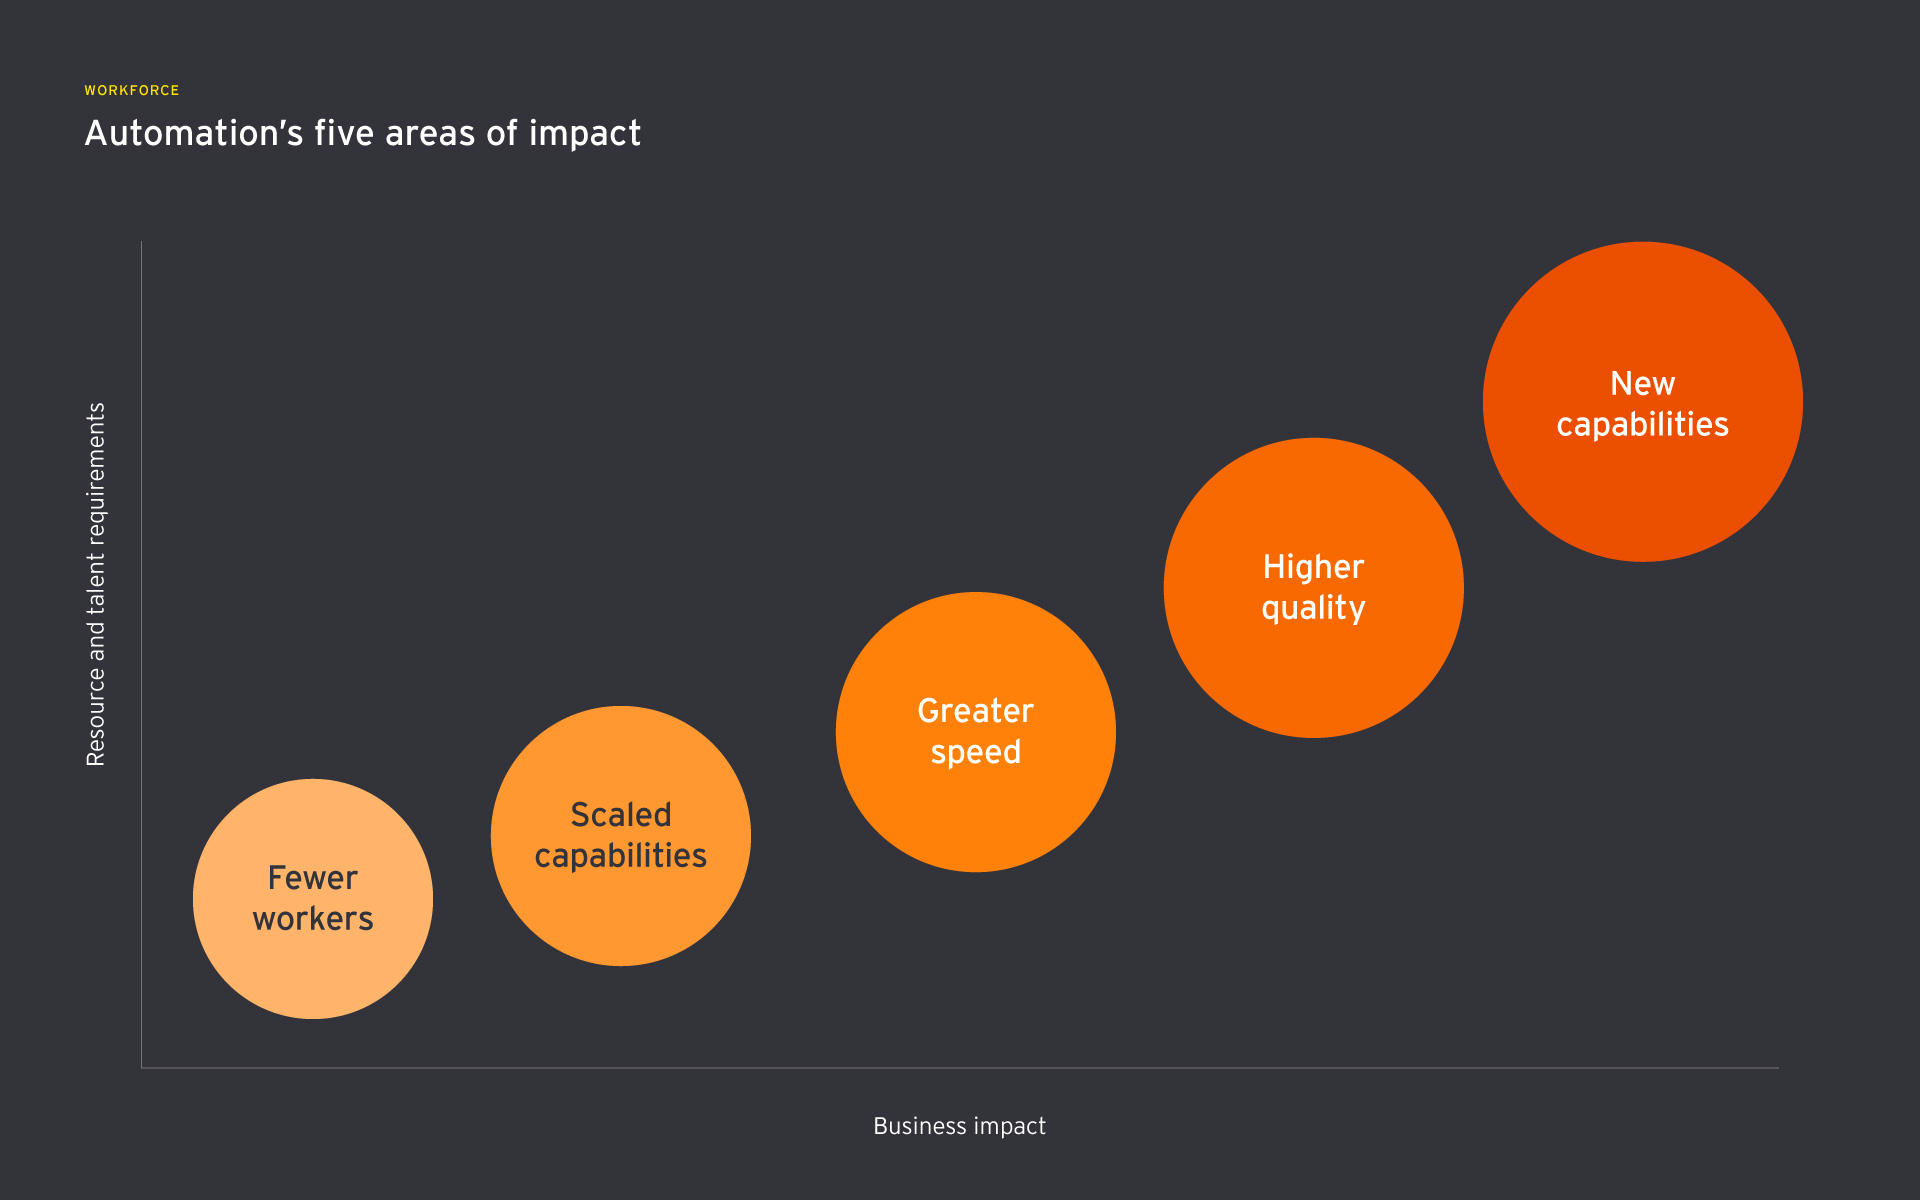 5 areas of impact for automation